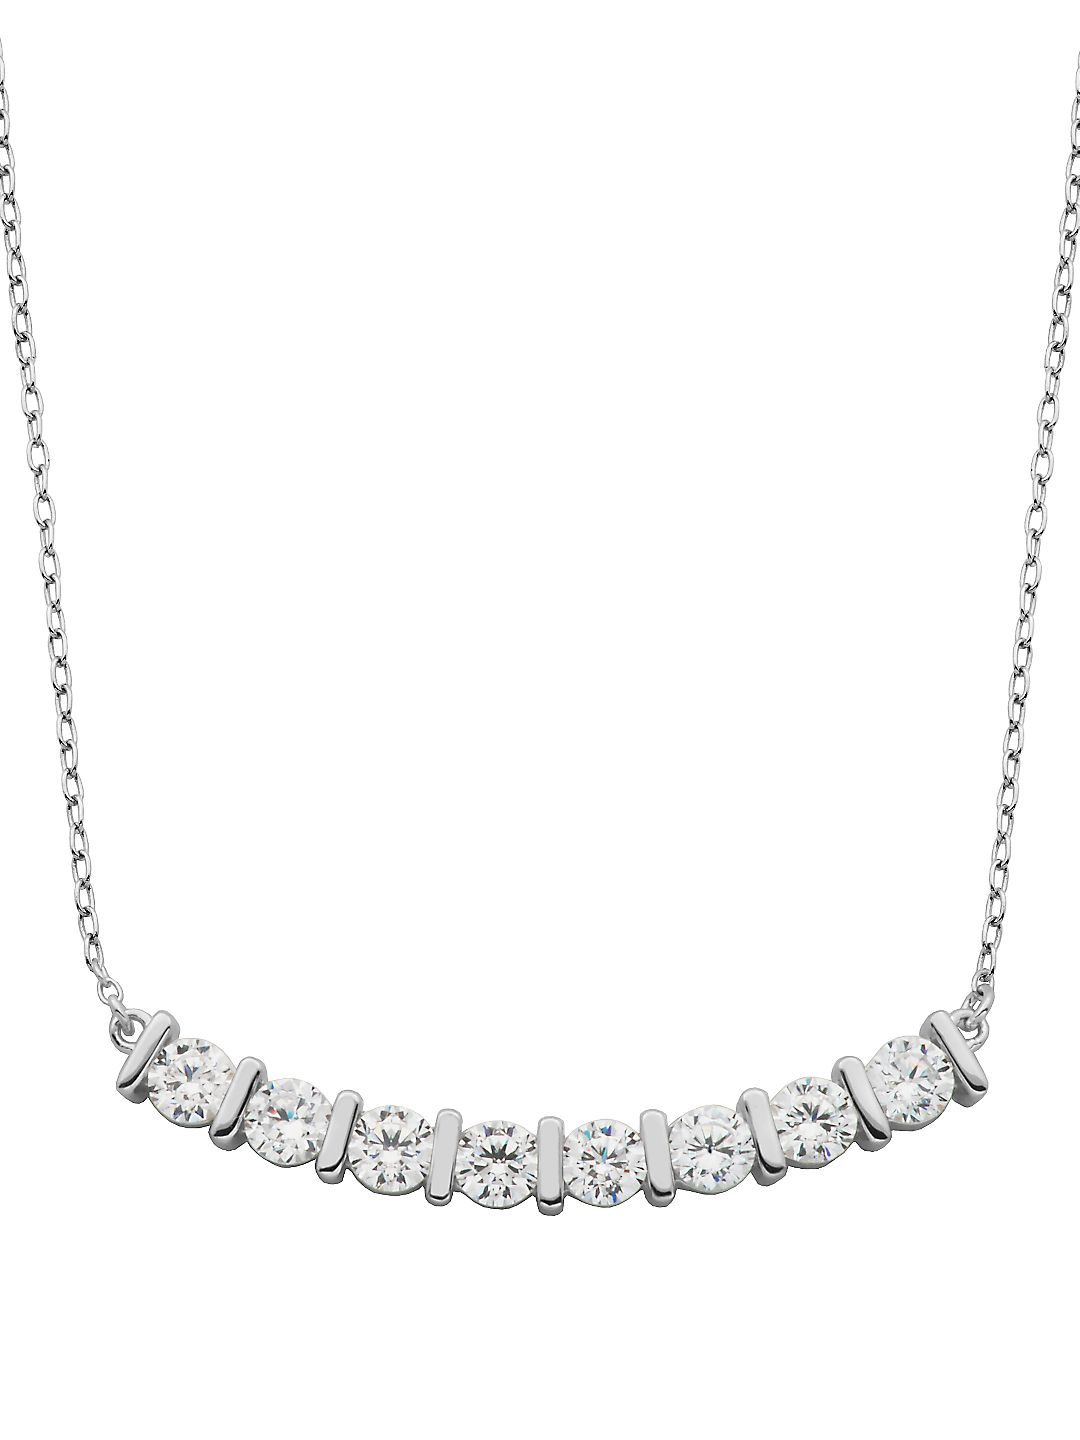 Cubic Zirconia and Sterling Silver Bar Necklace